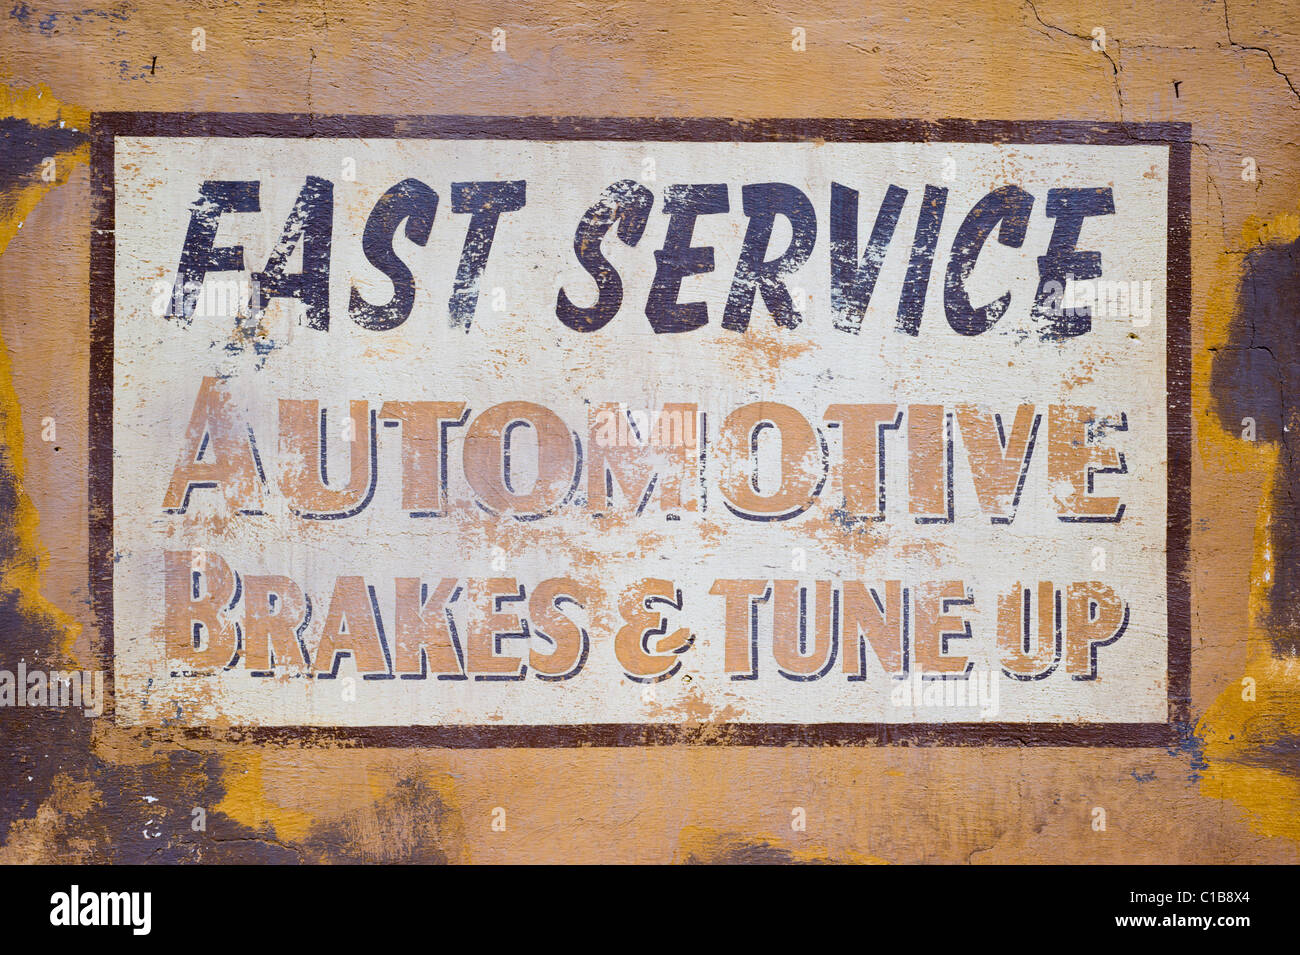 A proclamation of fast service on automotive work in Mountainair, New Mexico. - Stock Image